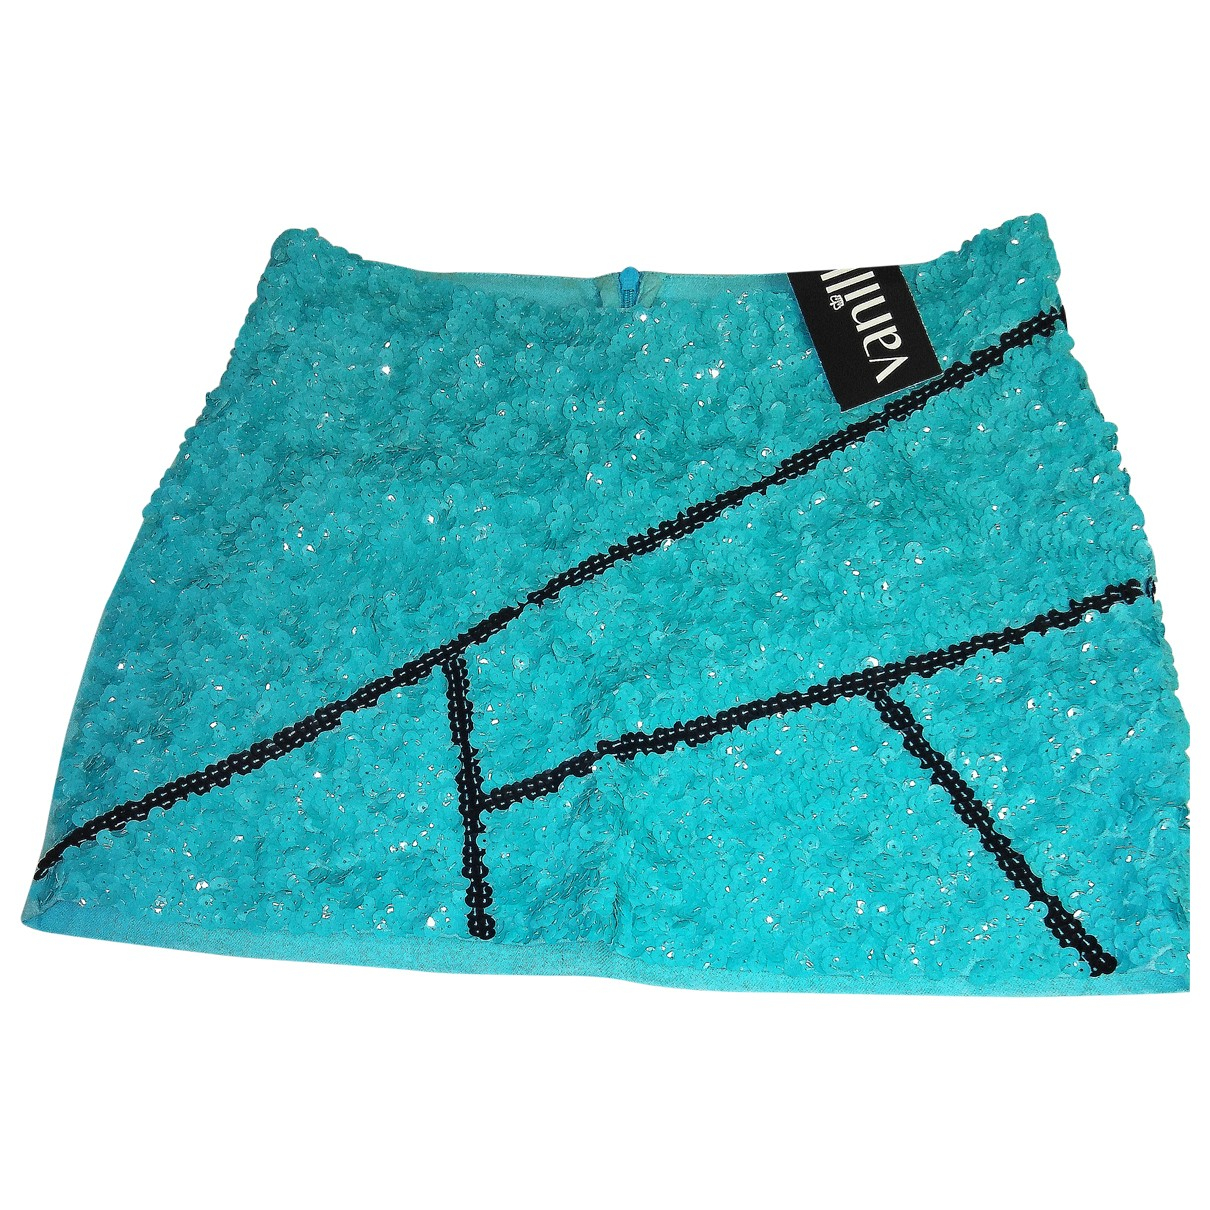 Aje \N Turquoise Cotton skirt for Women 8 UK